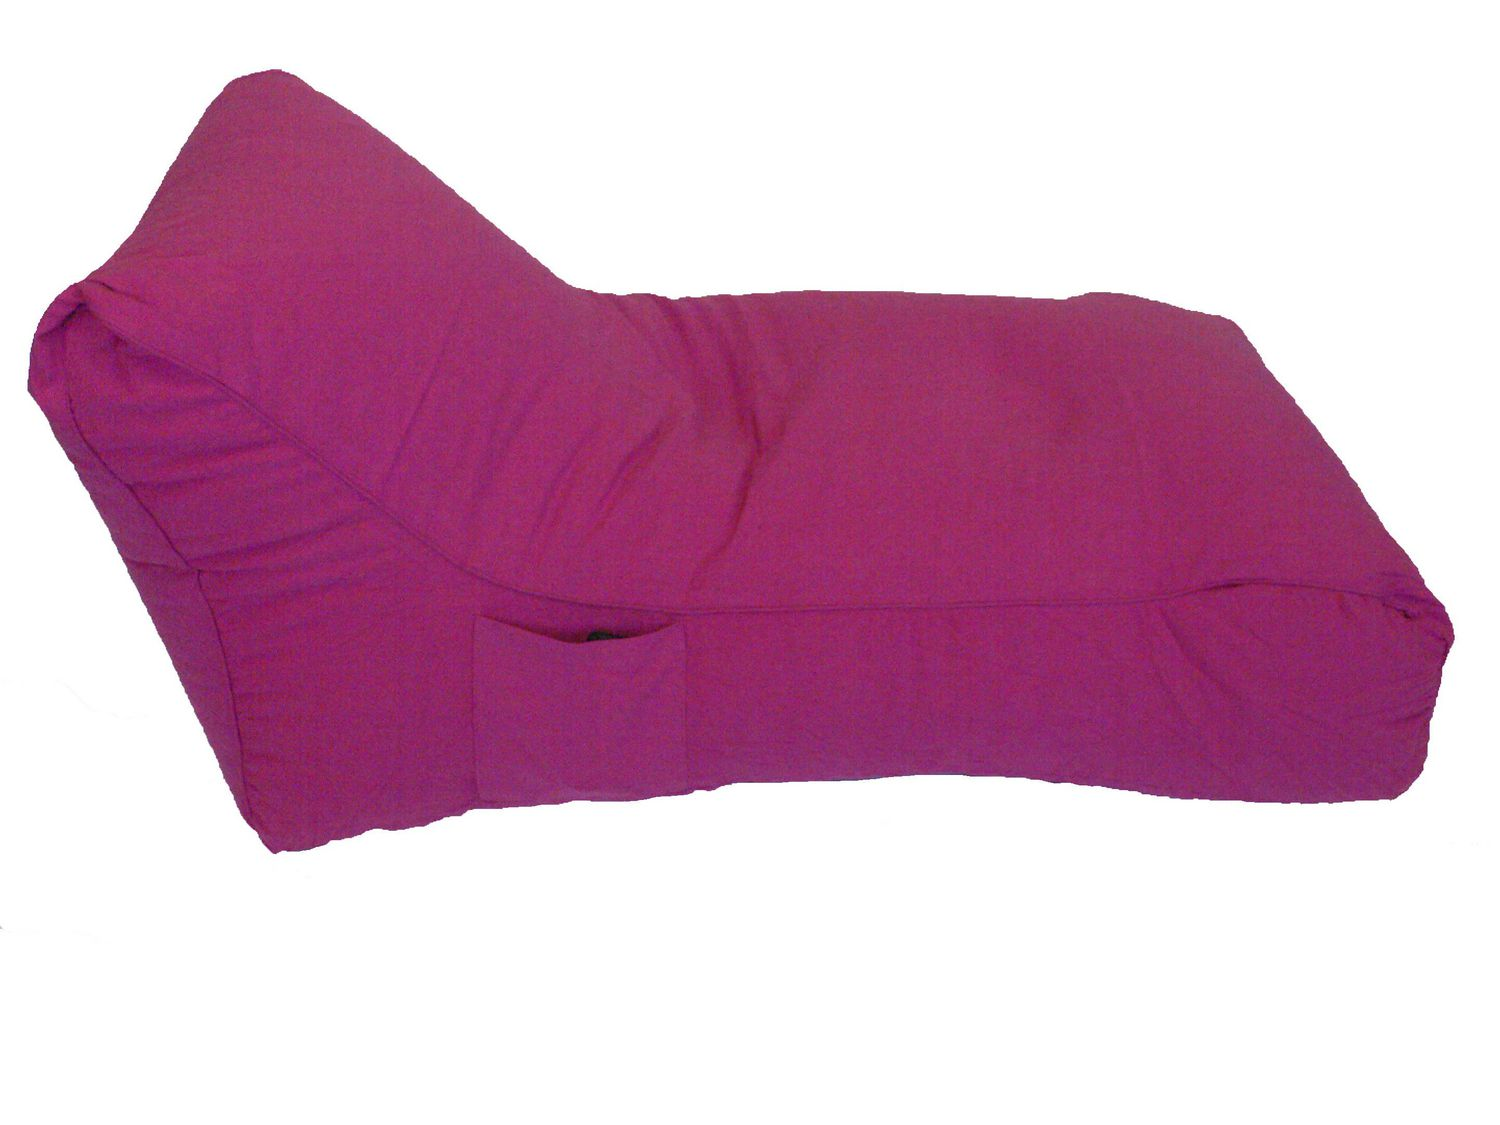 indoors or pink clasic adult for classic bag bean beanbags beanbag low chair outdoors